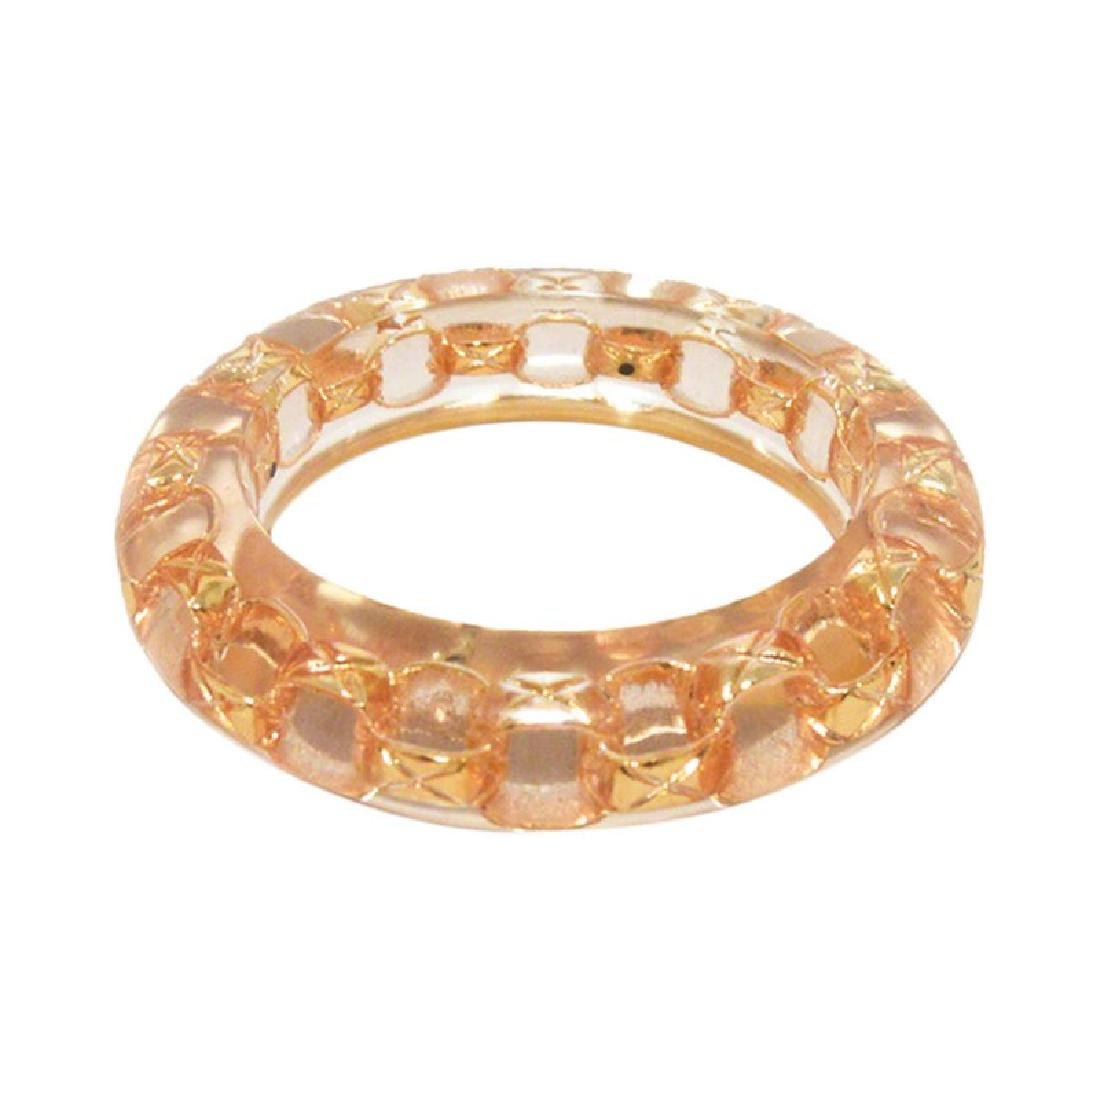 Authentic Chanel Clear Acrylic and Gold Chain Bangle